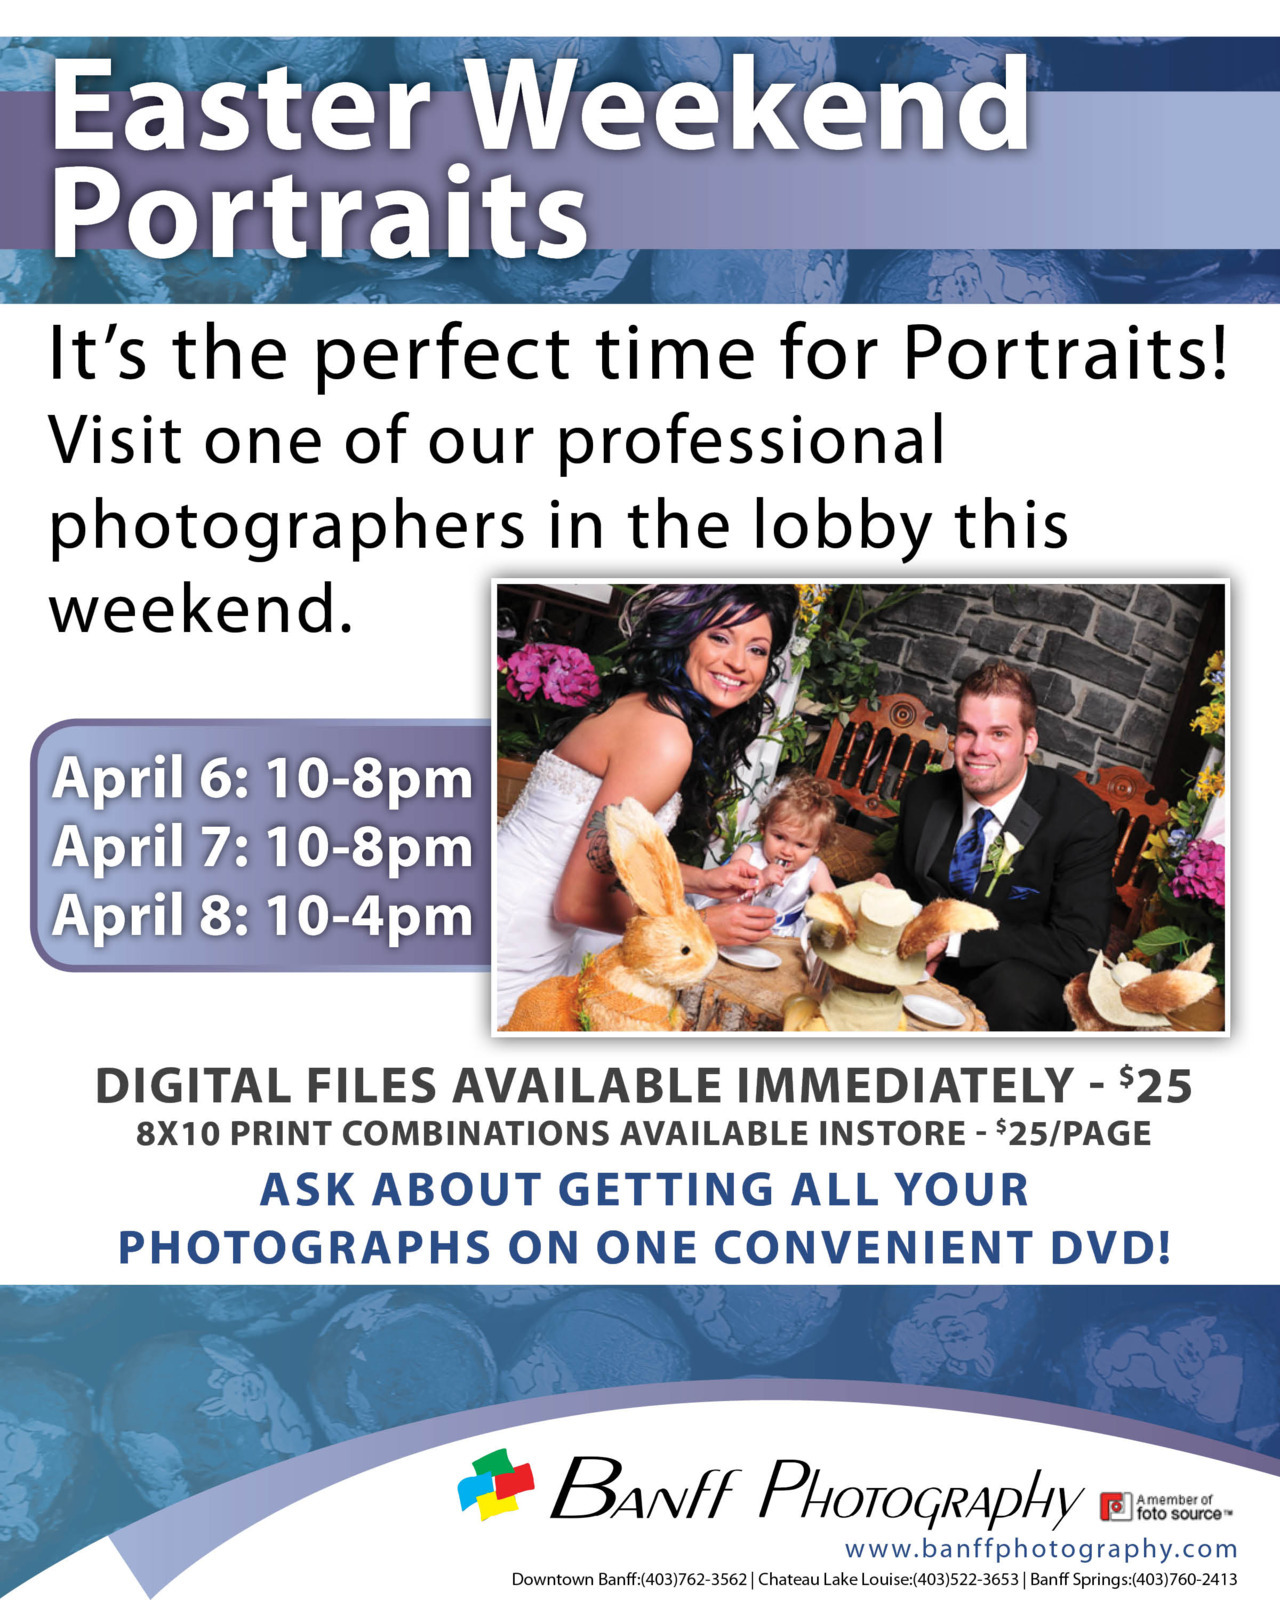 We are doing EASTER PORTRAITS in the Lobby at the Banff Springs Hotel all weekend long! Come have some photo's taken in our lovely Easter set. http://www.banffphotography.com